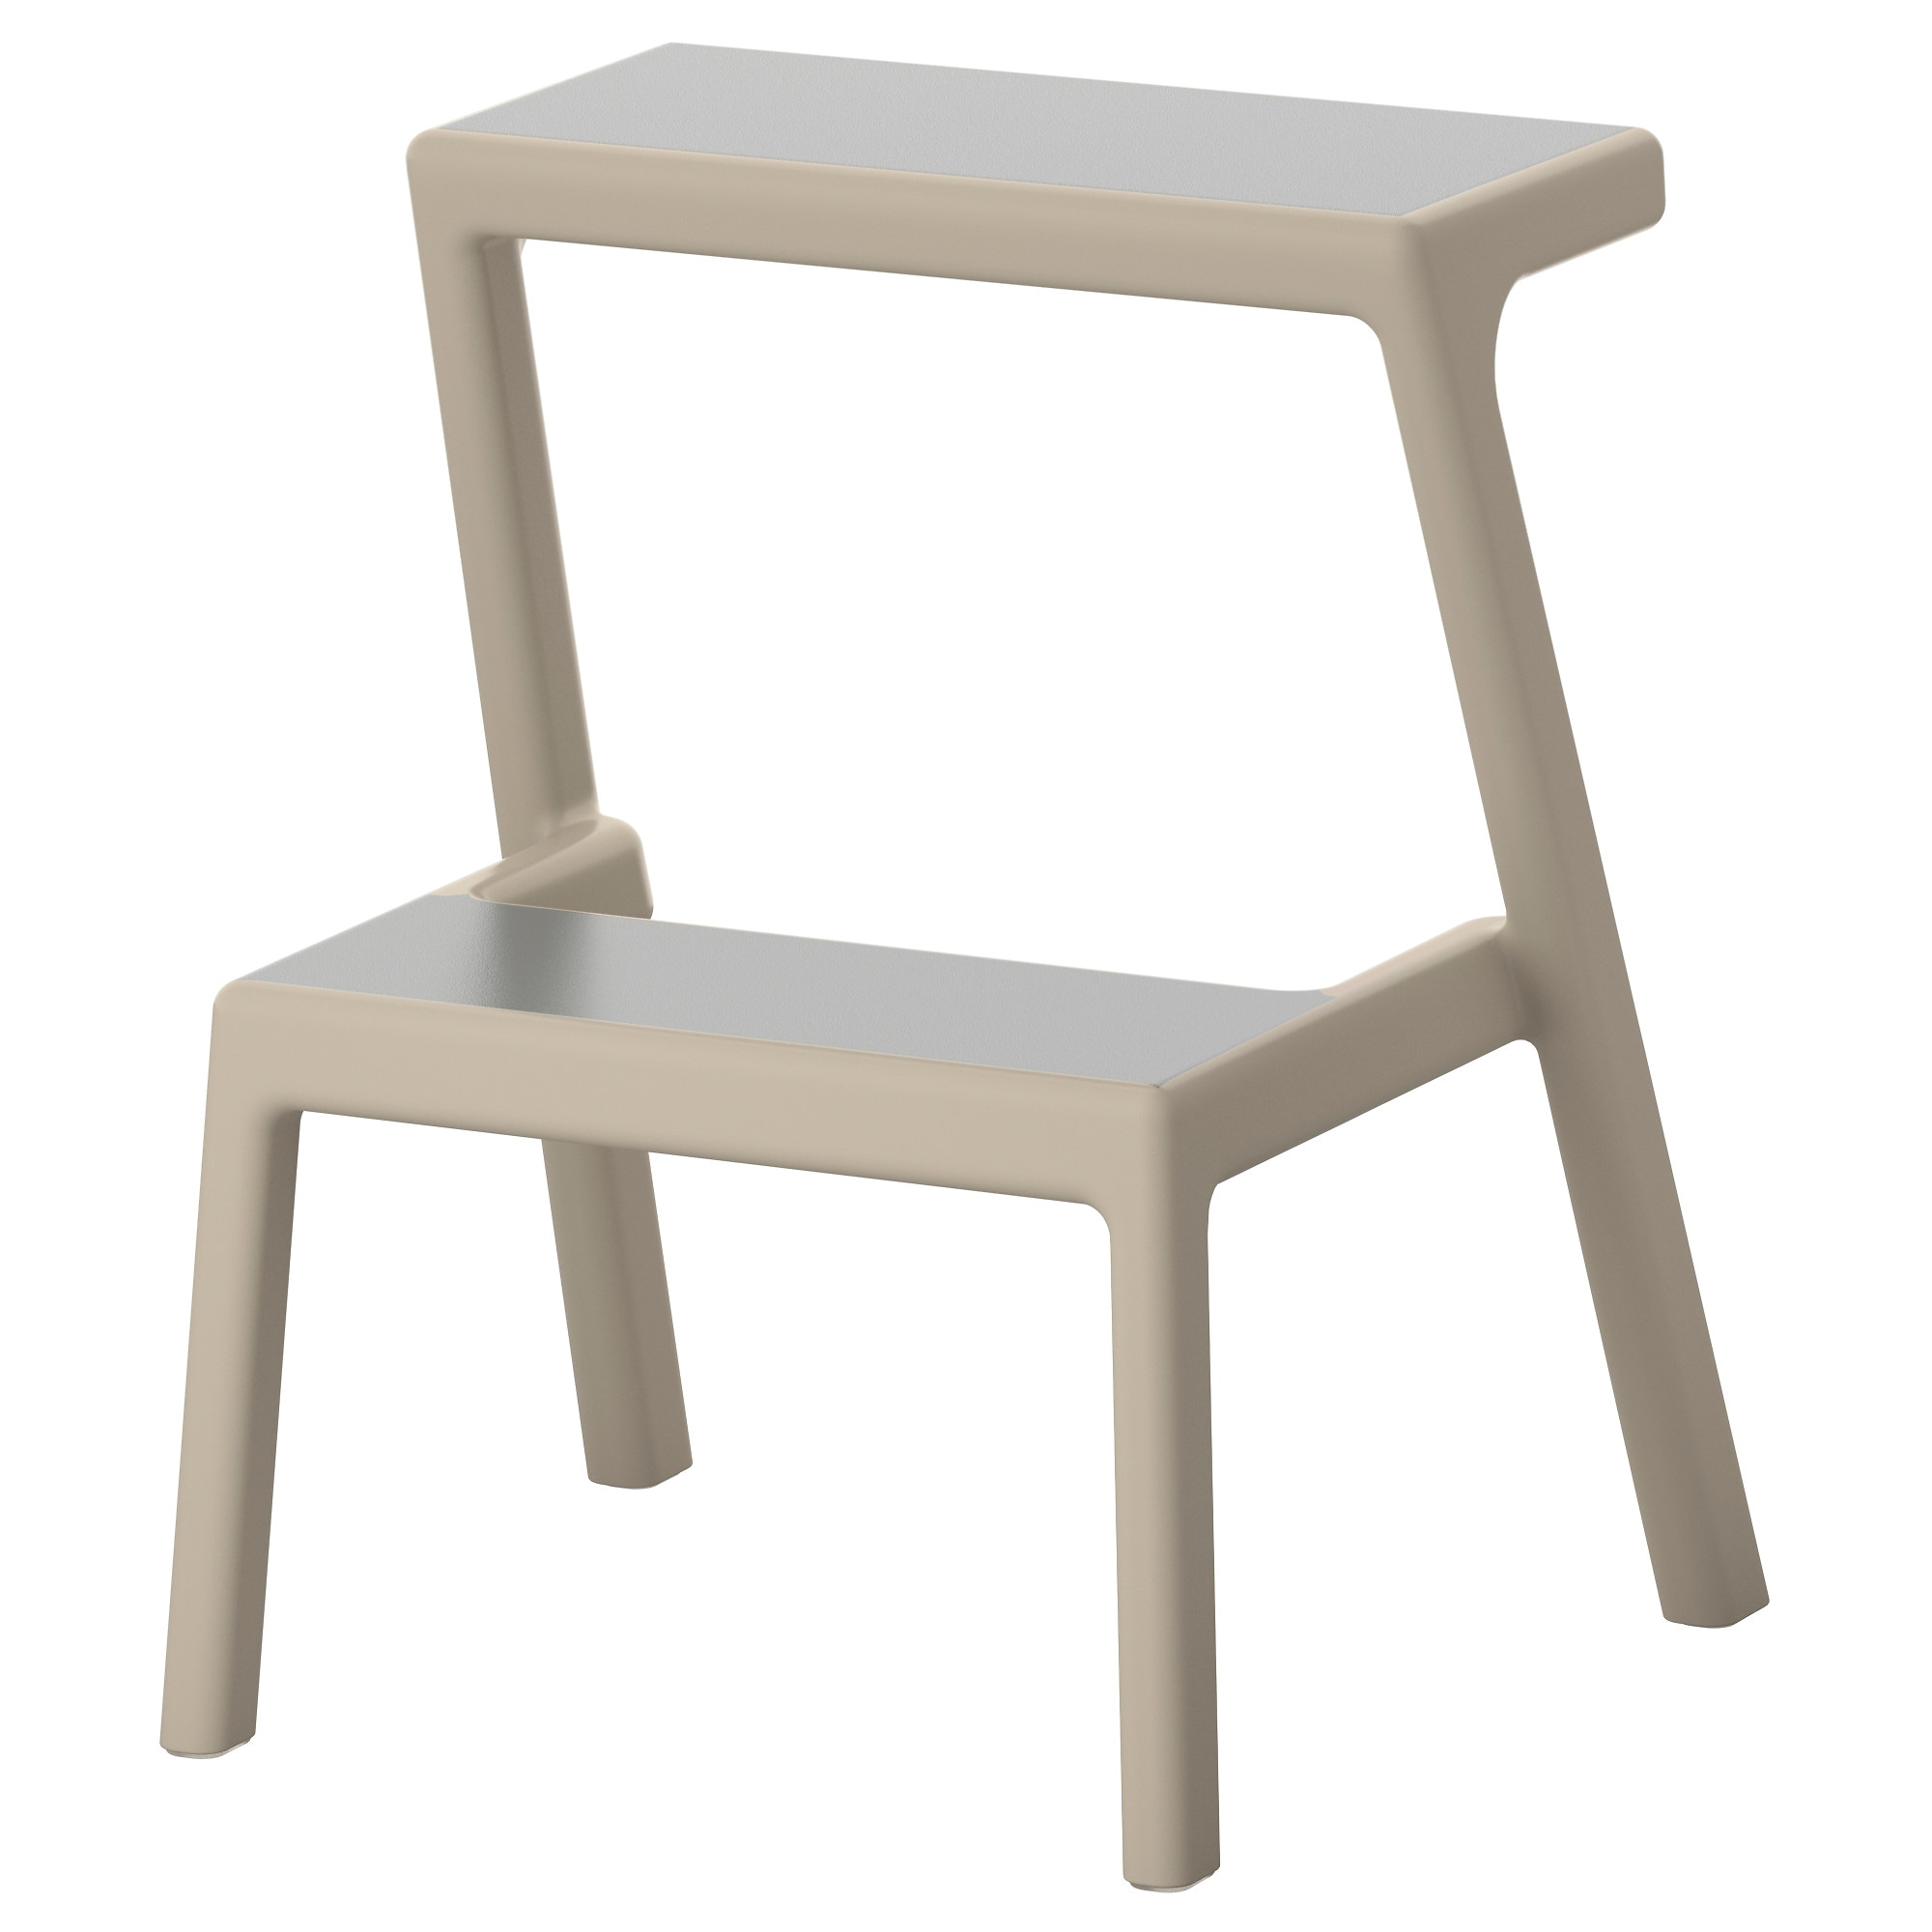 MÄSTERBY step stool beige Width 16 7/8   Depth 15 3  sc 1 st  Ikea & Kitchen Step Stools and Step Ladders - IKEA islam-shia.org